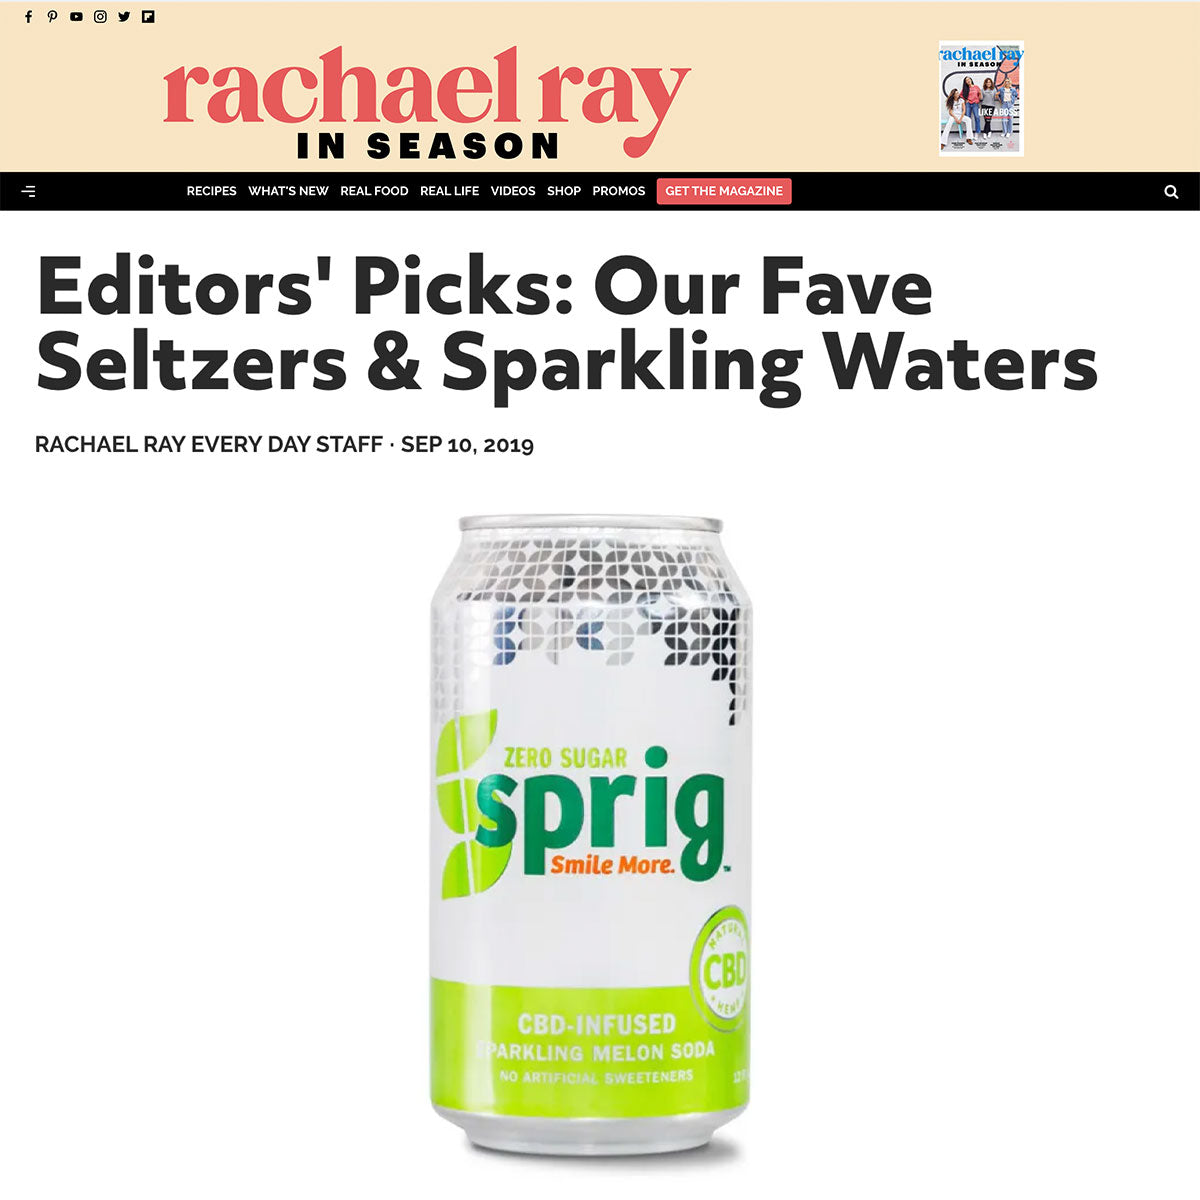 Rachel Ray Every Day: Our Fave Seltzers & Sparkling Waters